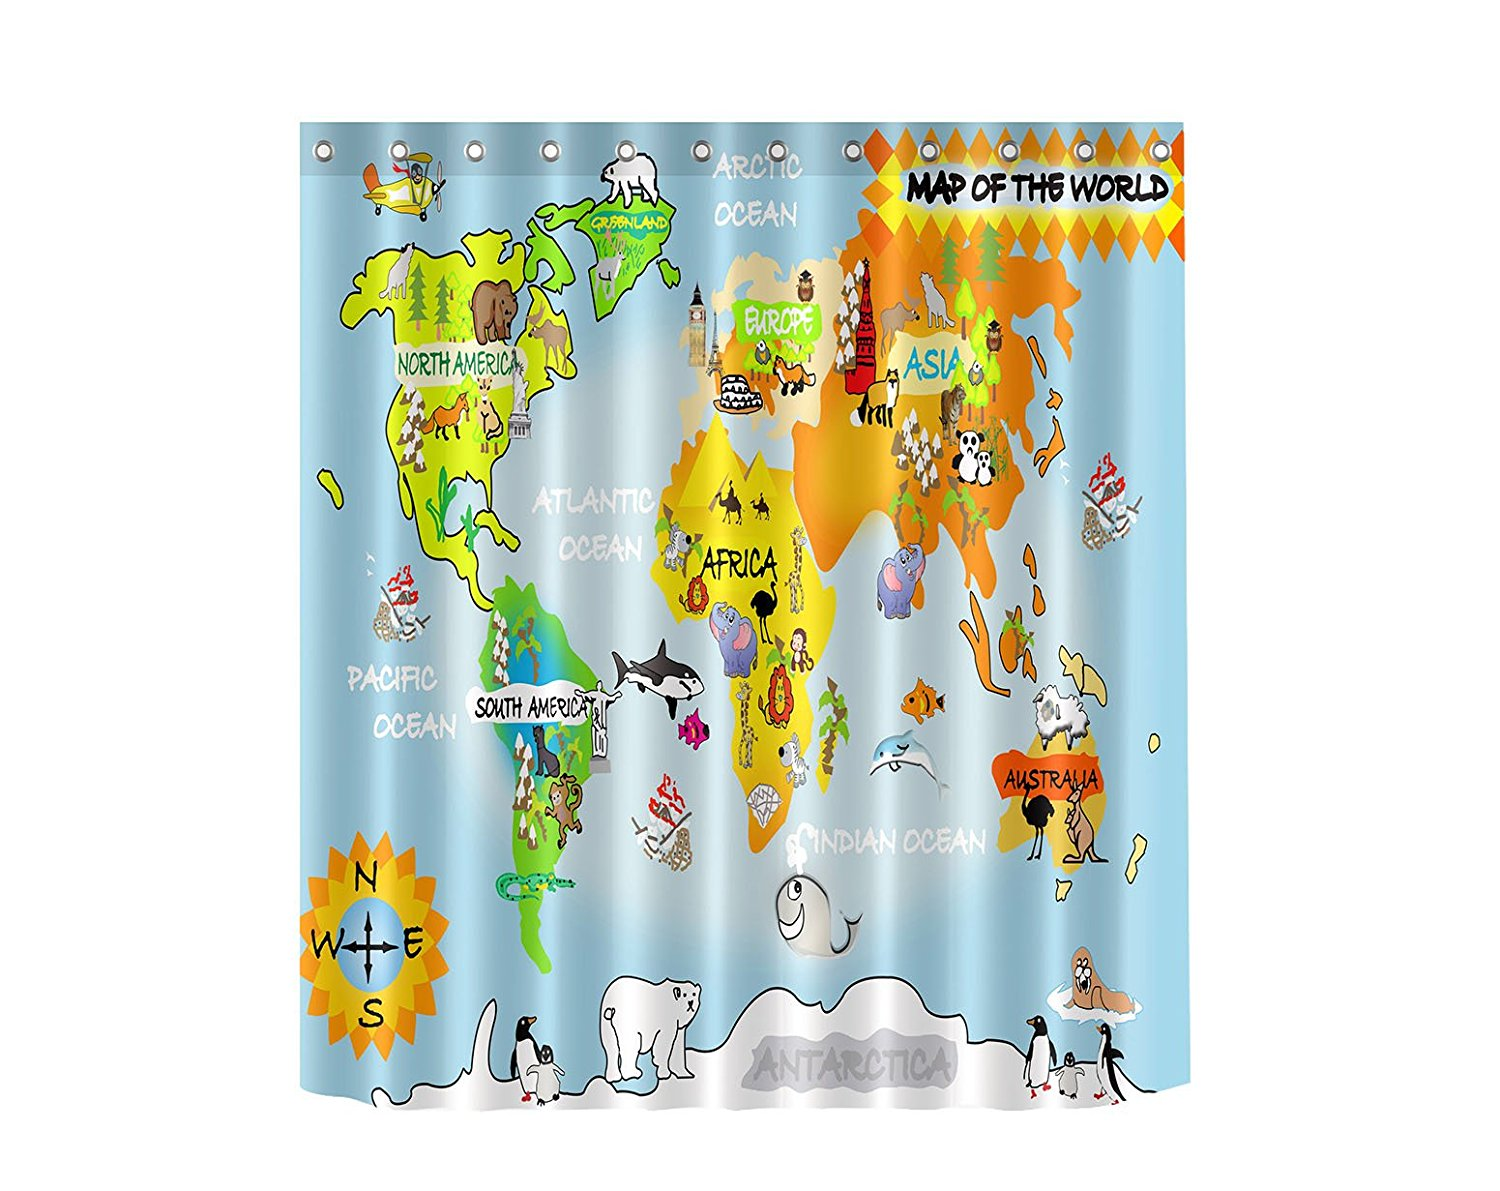 Kids Water Repellent Fabric Map of the World Shower Curtain 70x70 in Children Cute World Map Curtain Animal Shower Curtain